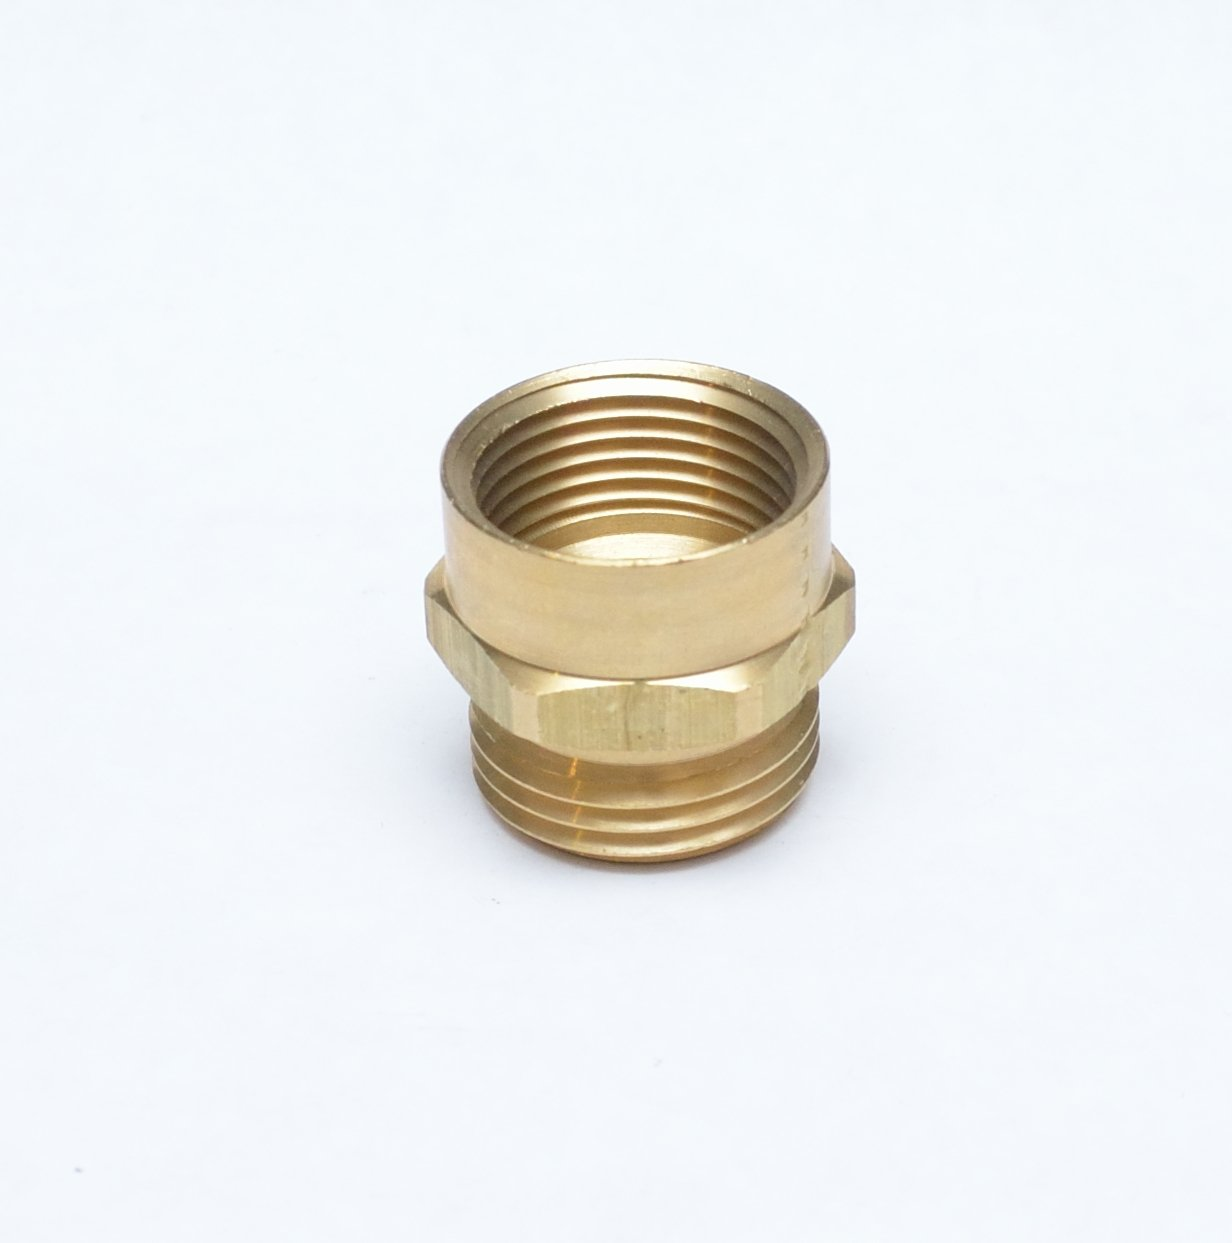 """FASPARTS 3/4"""" Female NPT FPT FIP to 3/4"""" Male GHT Garden Hose Thread Adapter Brass Fitting Fuel/Air/Water/Boat/Gas/Oil WOG House/Boat/Lawn/Power Wash/Irrigation"""